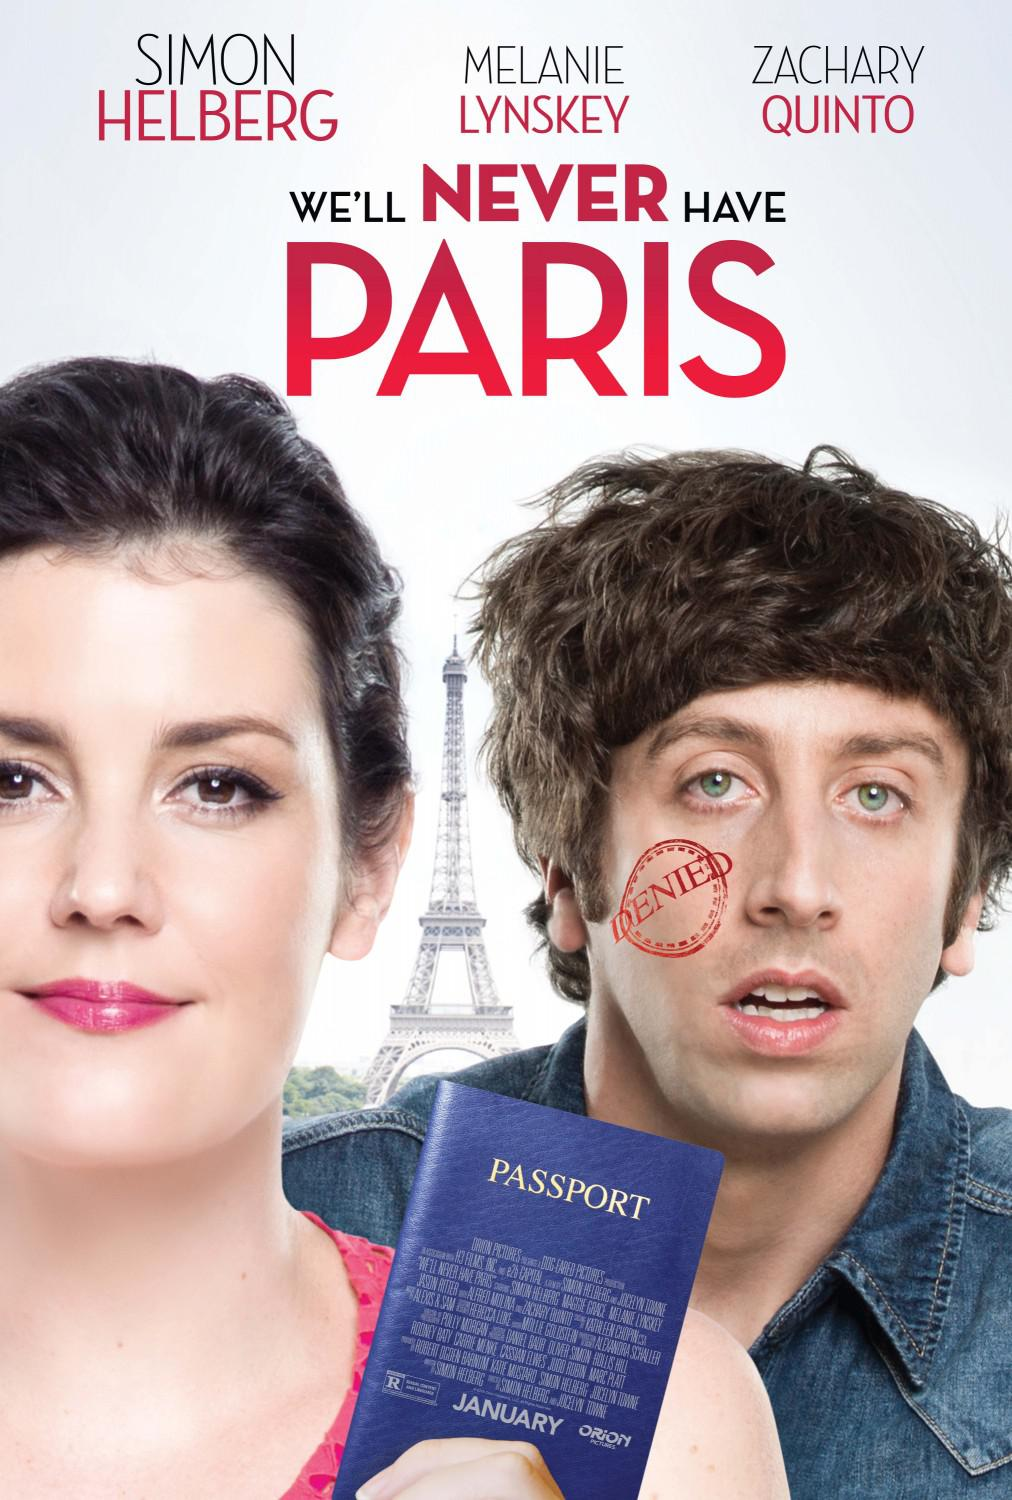 Well never have Paris - Simon Helberg